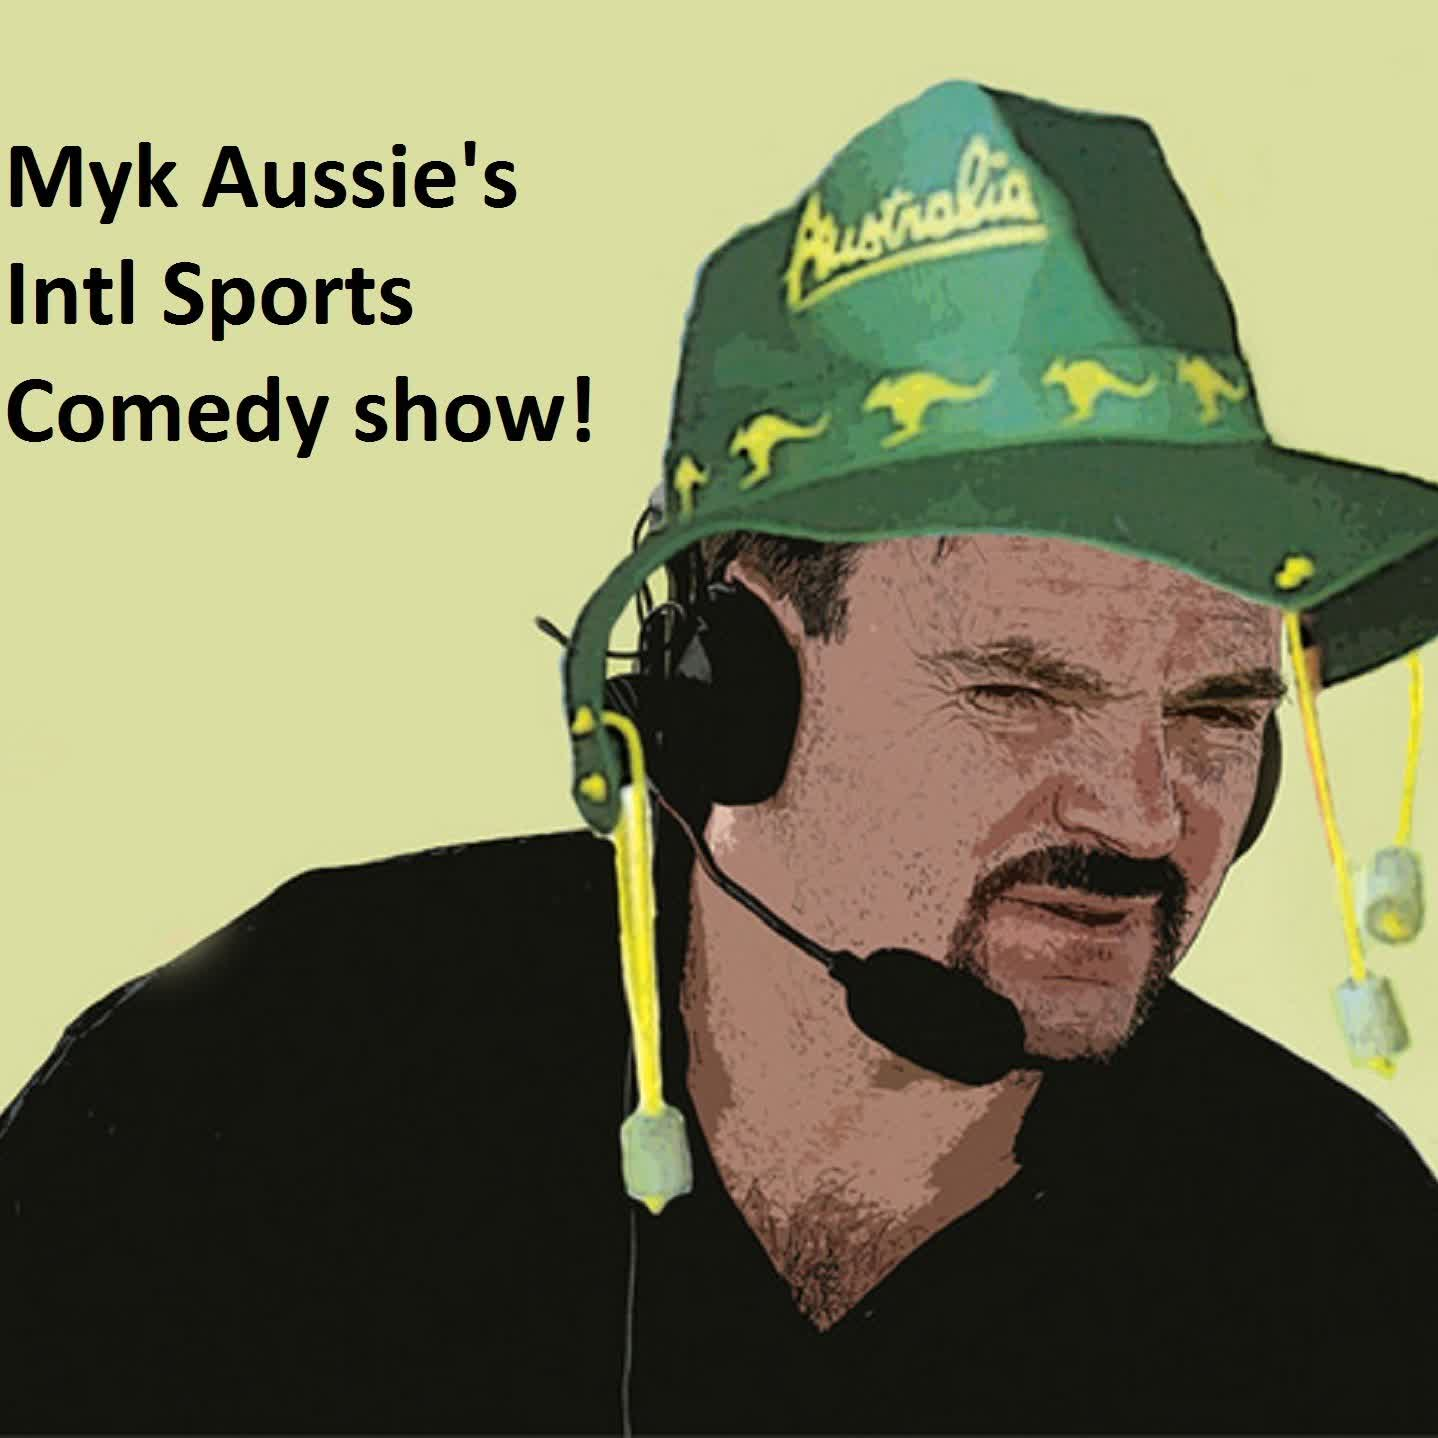 Mar 10, 2021 AFL 2021 team previews of my Intl Sports, Sports Comedy show.